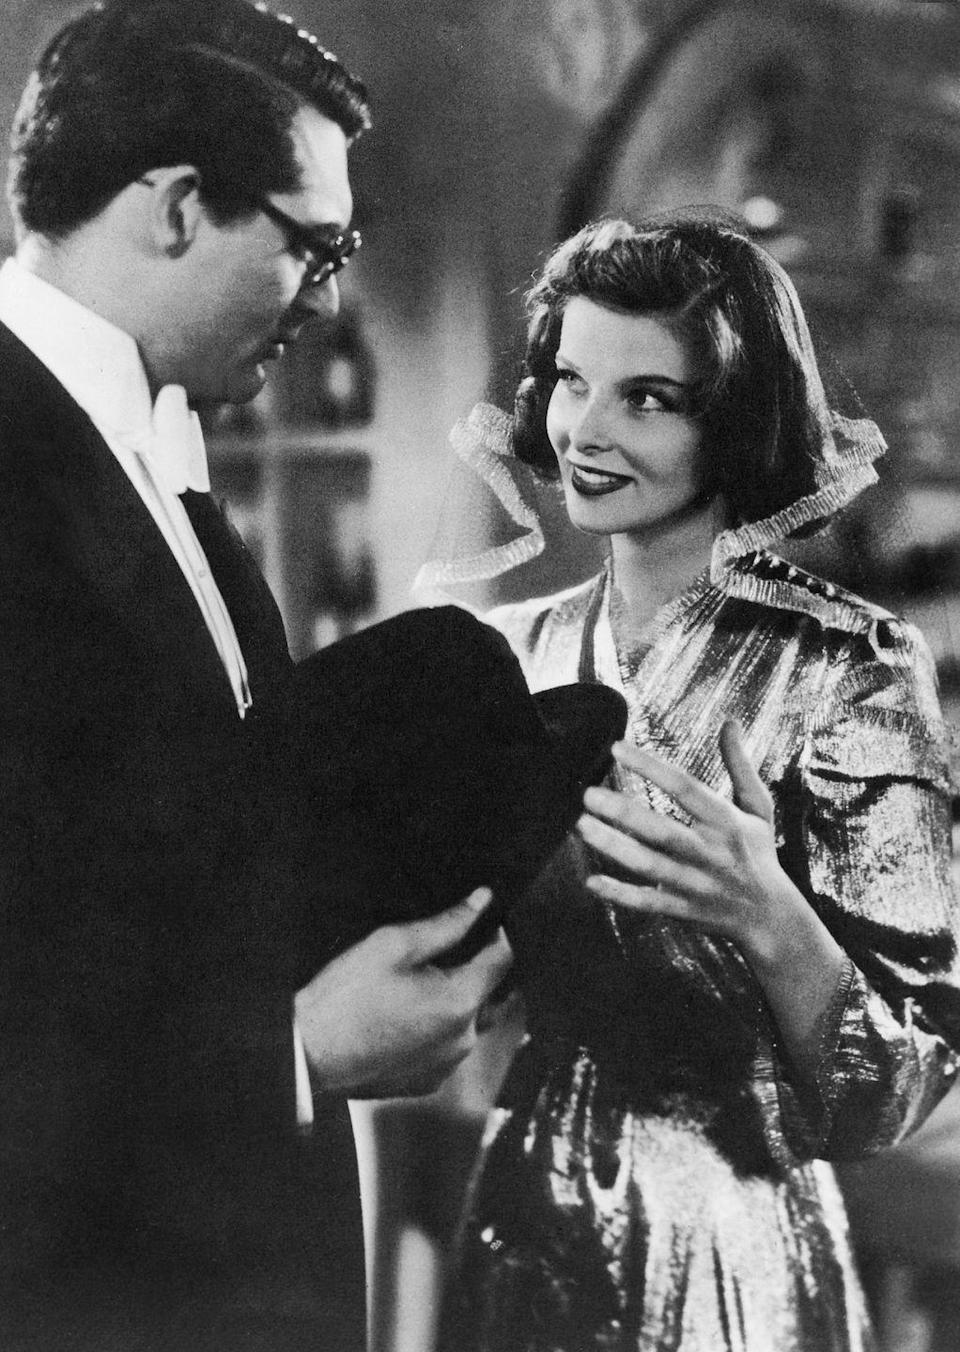 <p>In a movie that costars Katharine Hepburn and a pet leopard, it's no surprise the star boldly opted for a showstopping gold lamé floor-length gown. She topped off the look with a sheer veil with gold borders that'll forever be associated with <em>Bringing Up Baby</em>. </p>